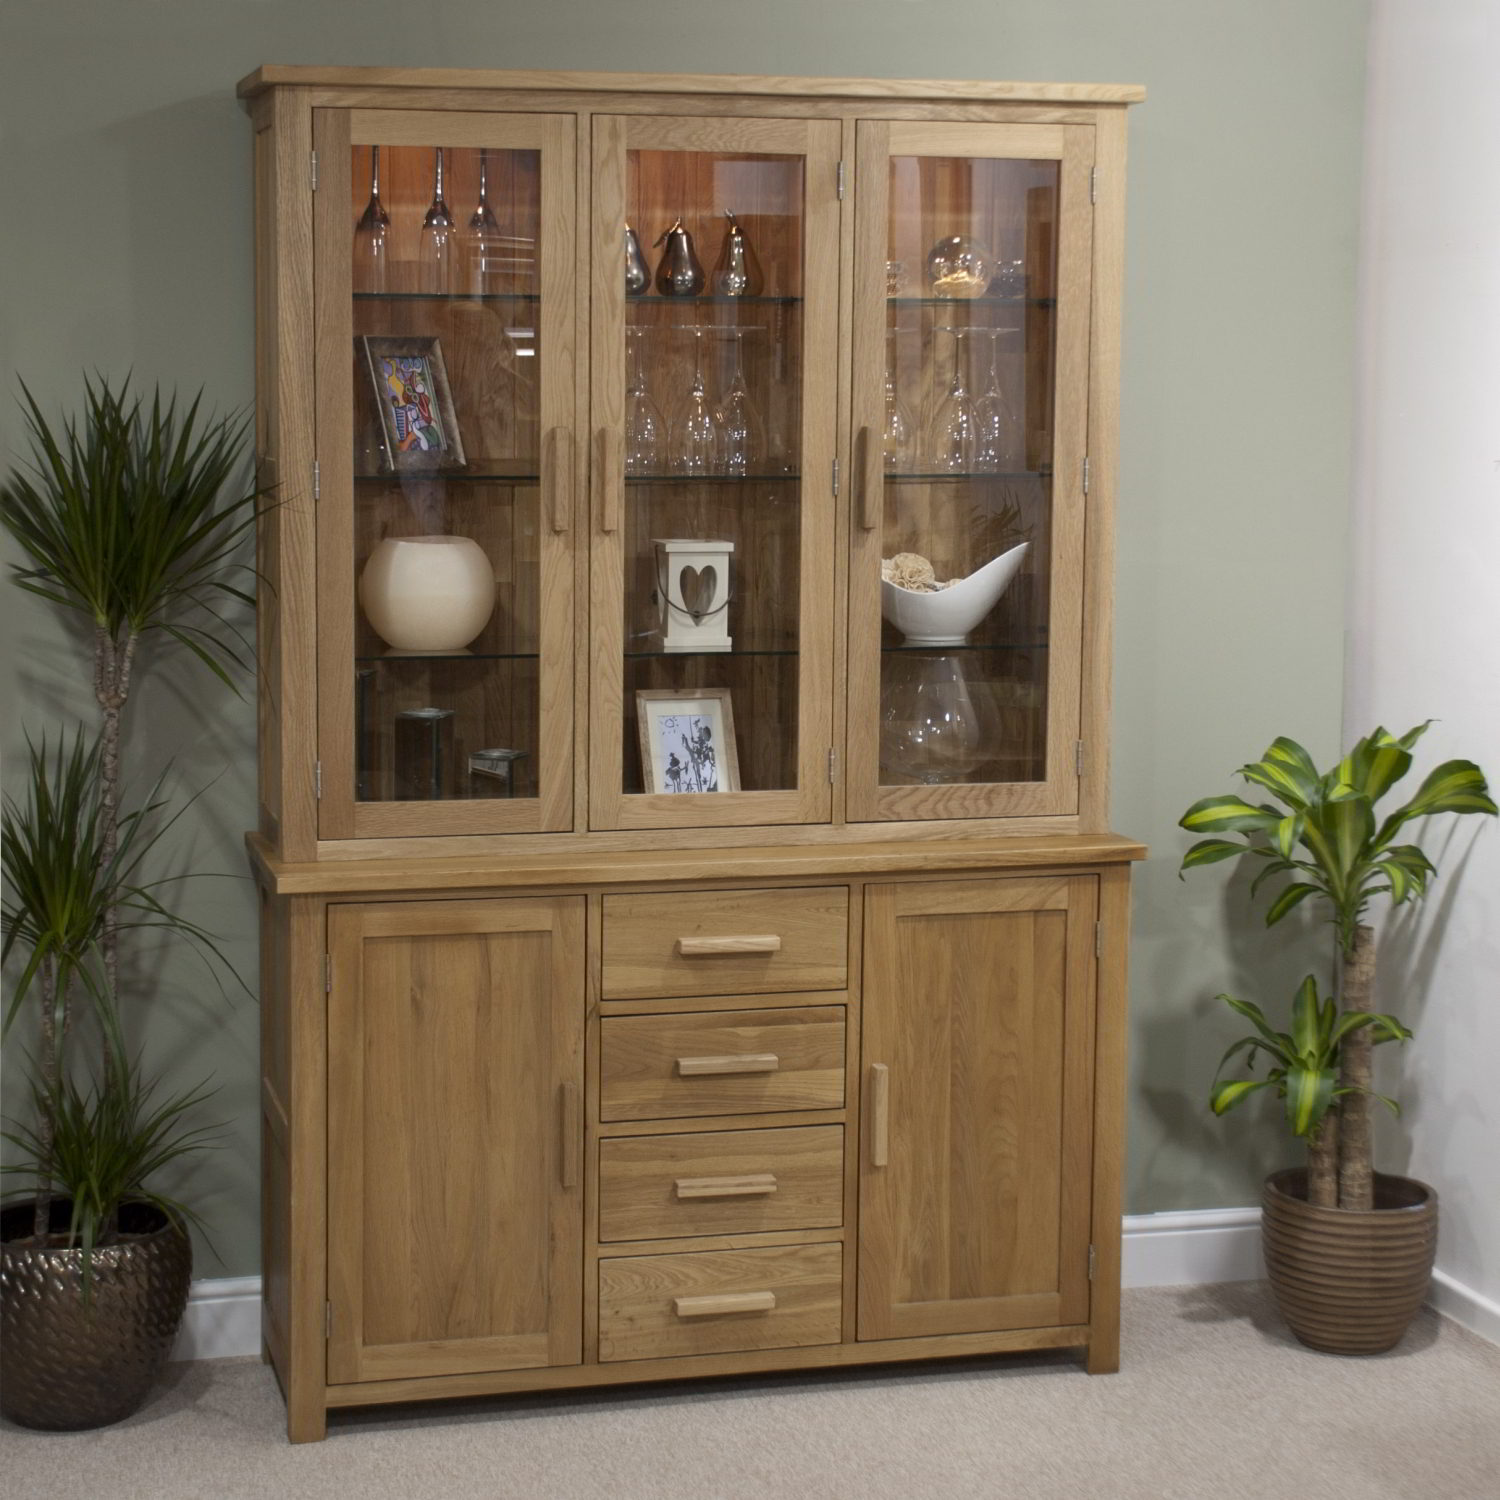 Eton solid oak furniture large glazed dresser display for Solid oak furniture